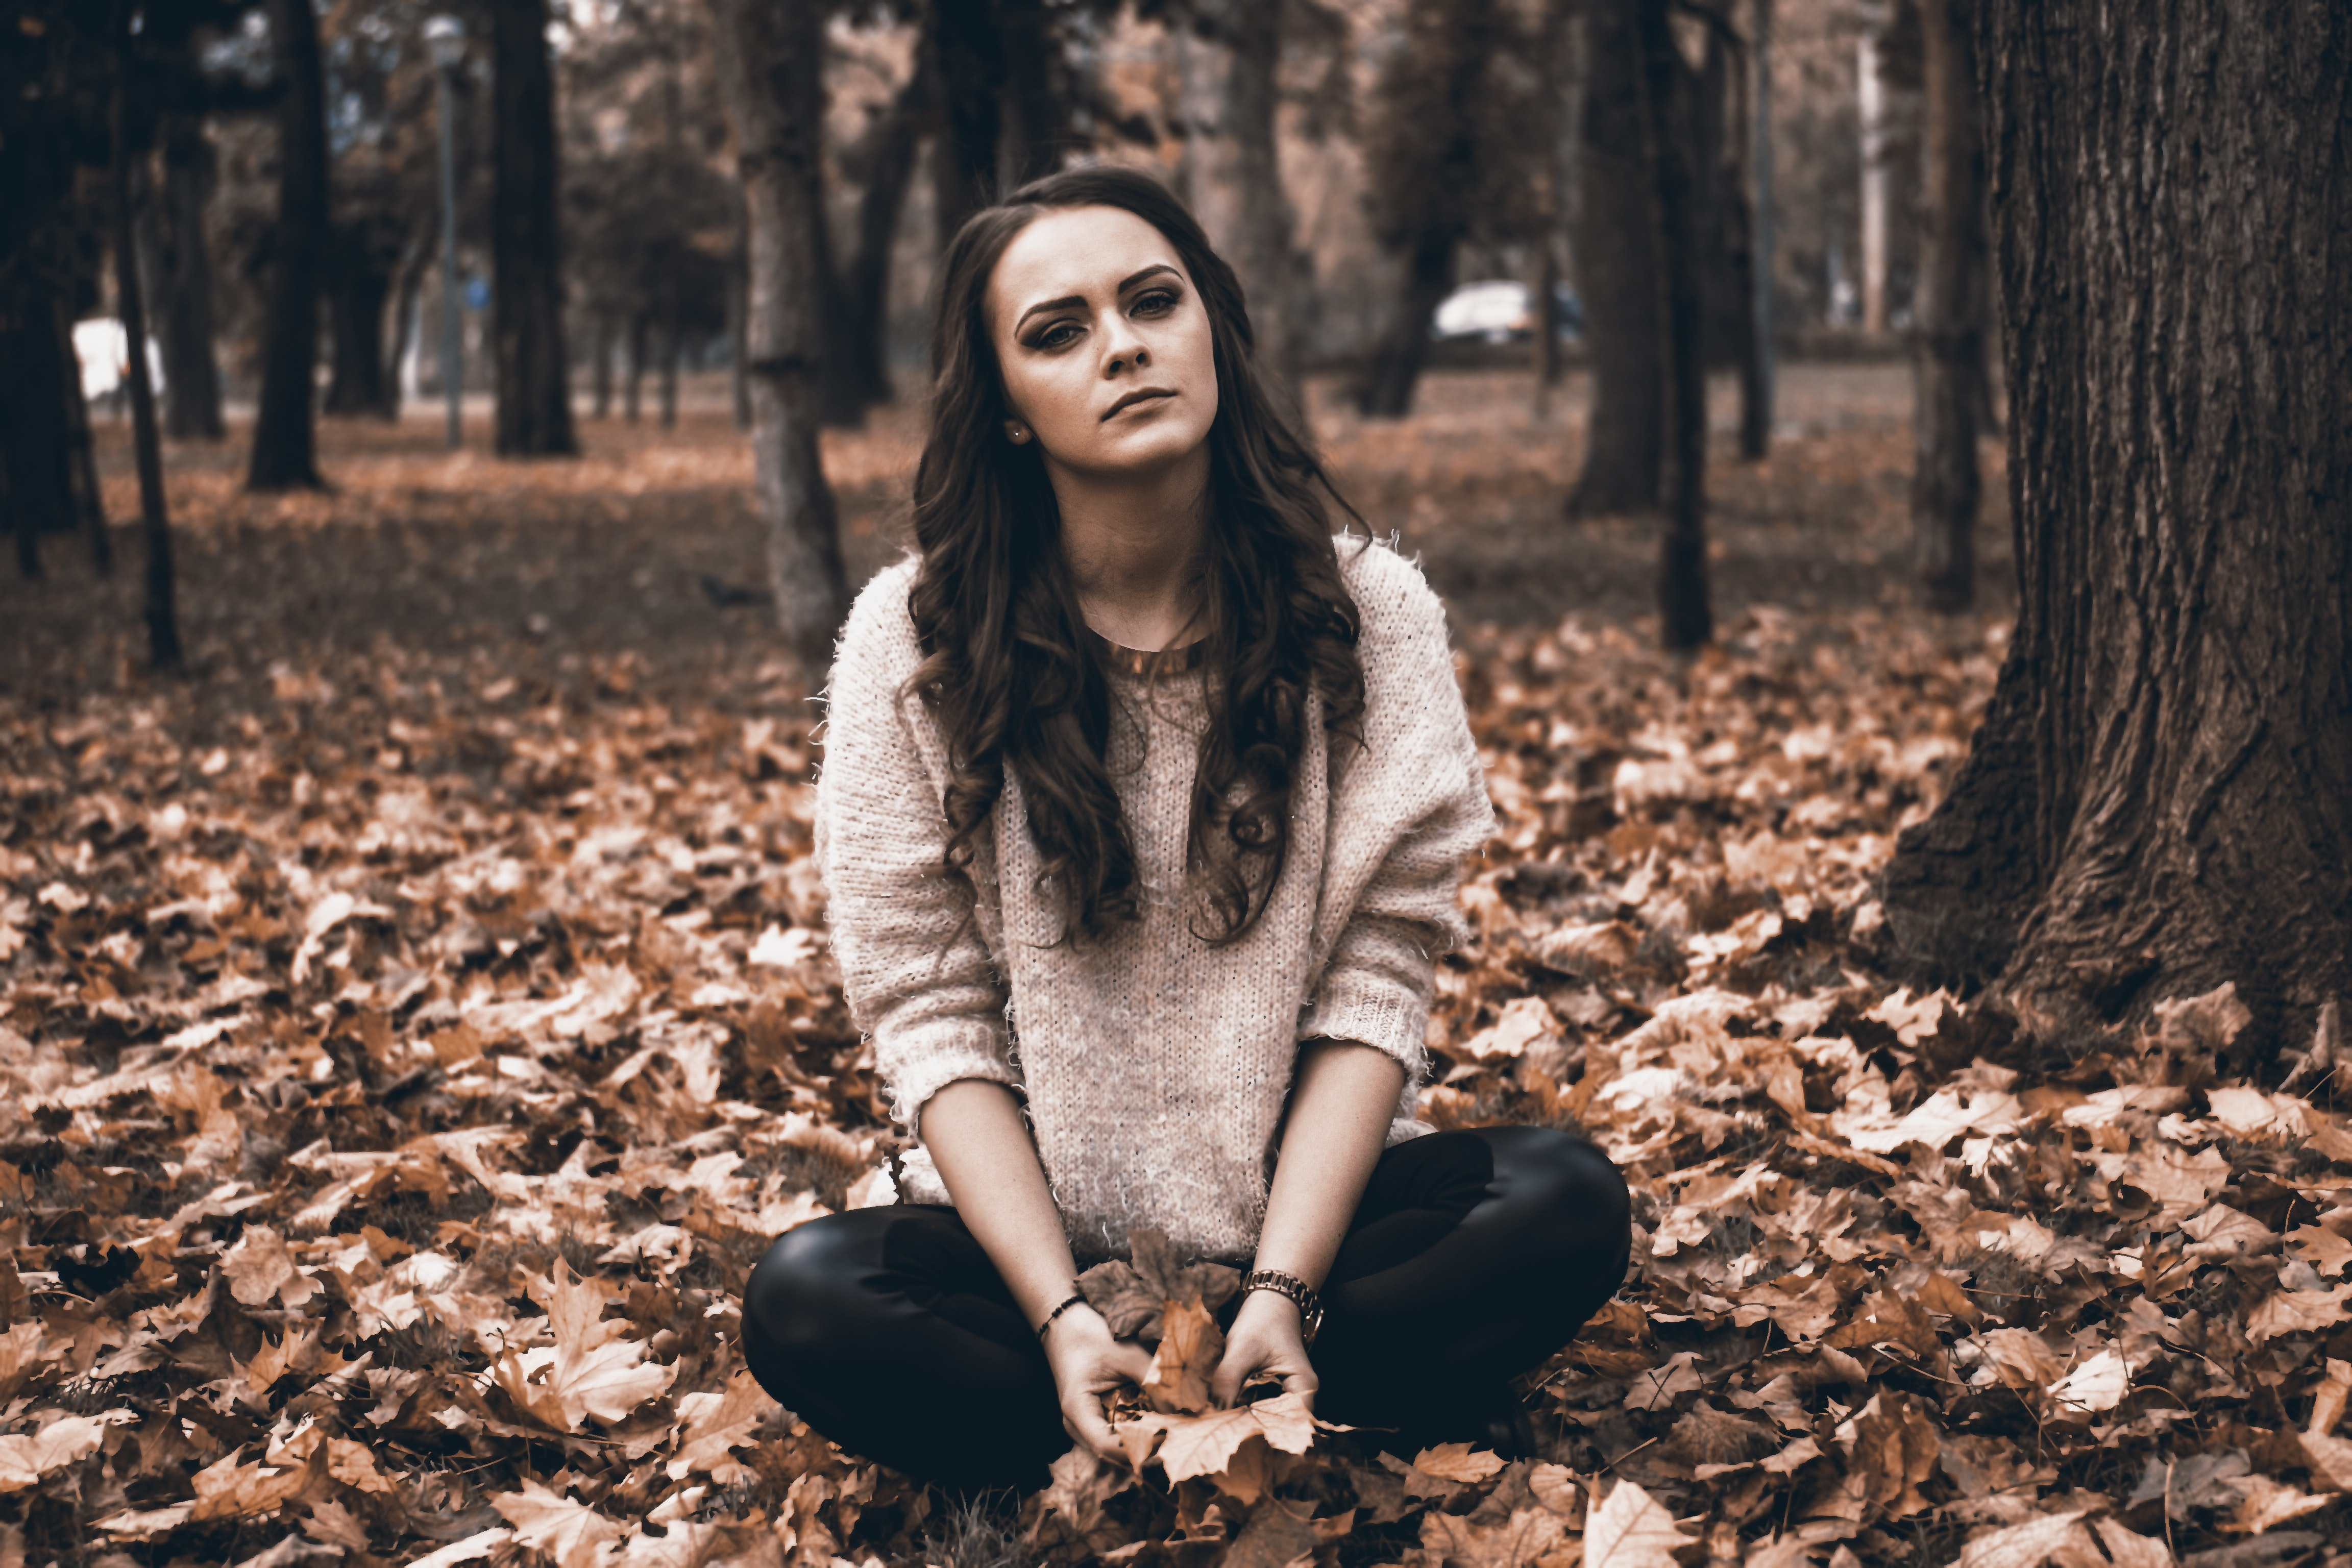 Portrait of a Young Woman in Forest, Adult, Model, Young, Wood, HQ Photo